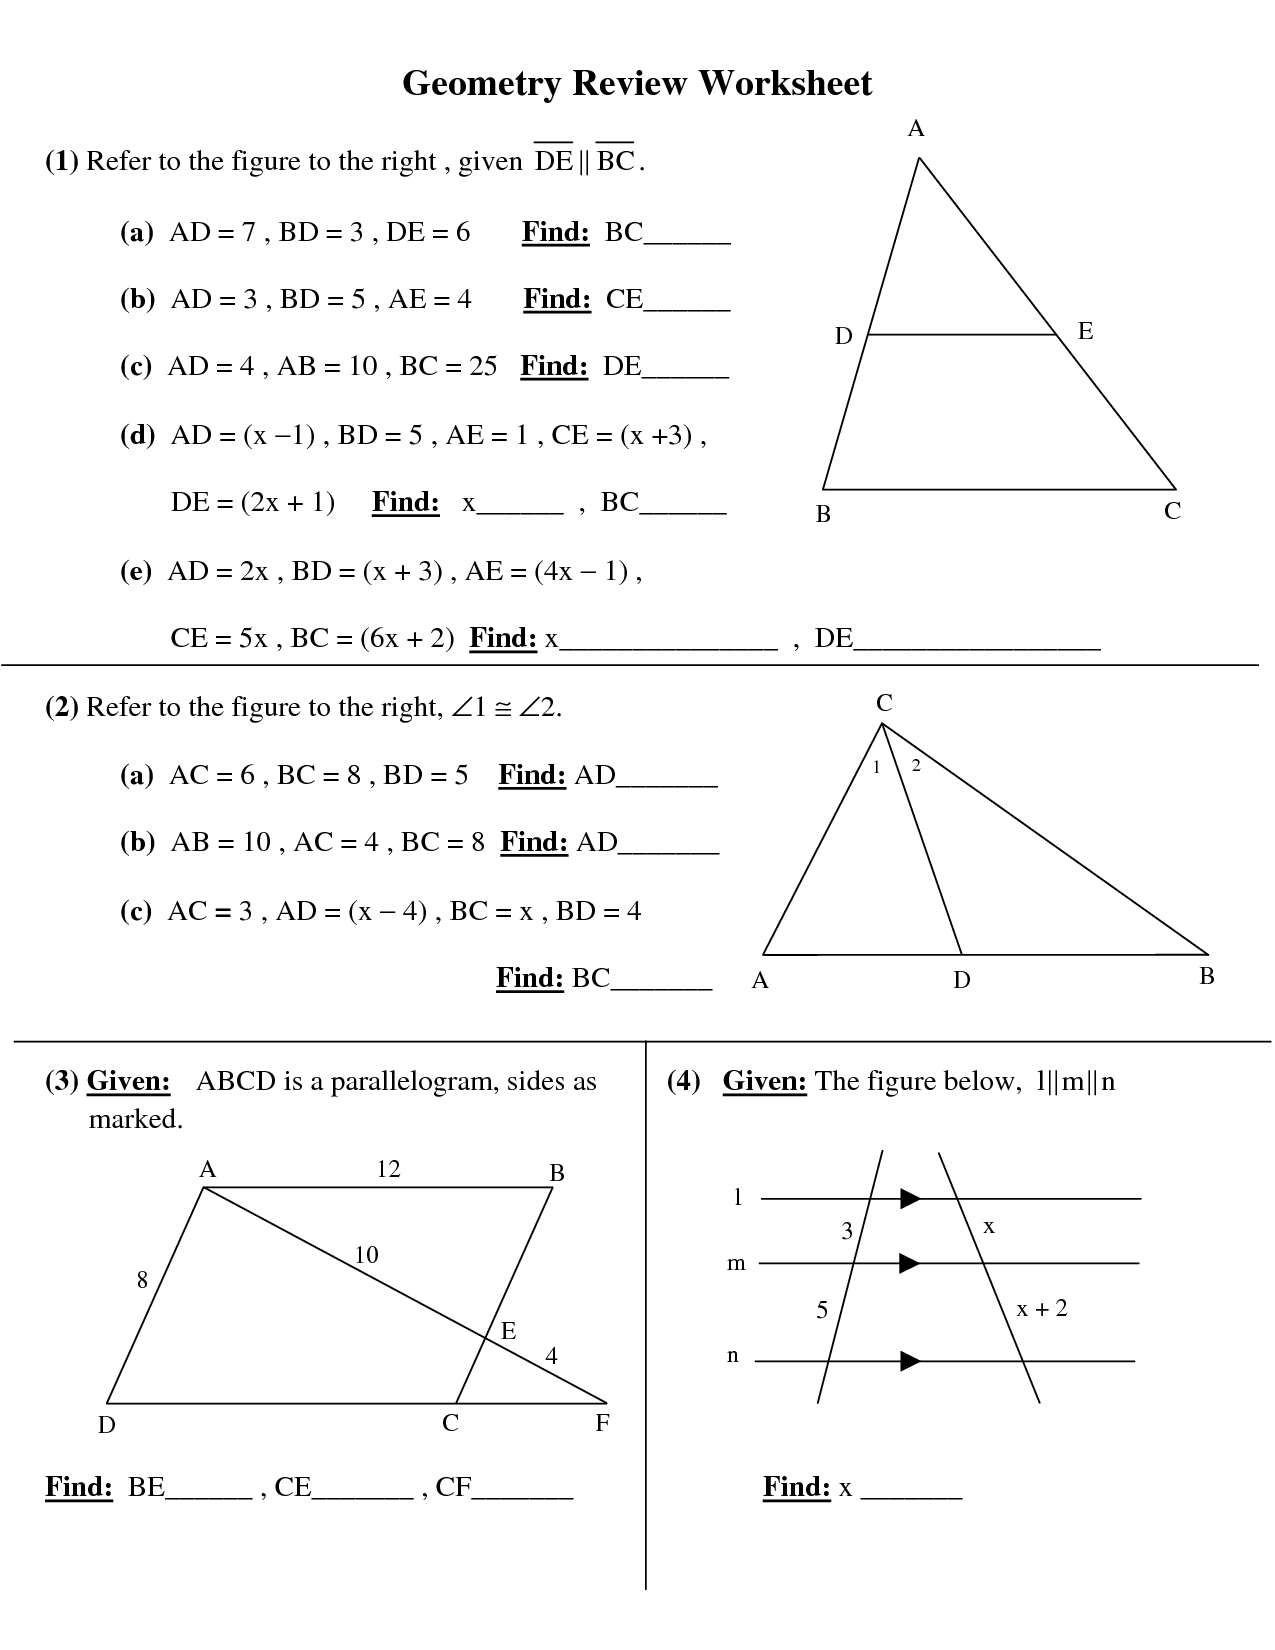 Worksheet Geometry Worksheets For High School Kerriwaller – Free Printable Math Worksheets for Highschool Students